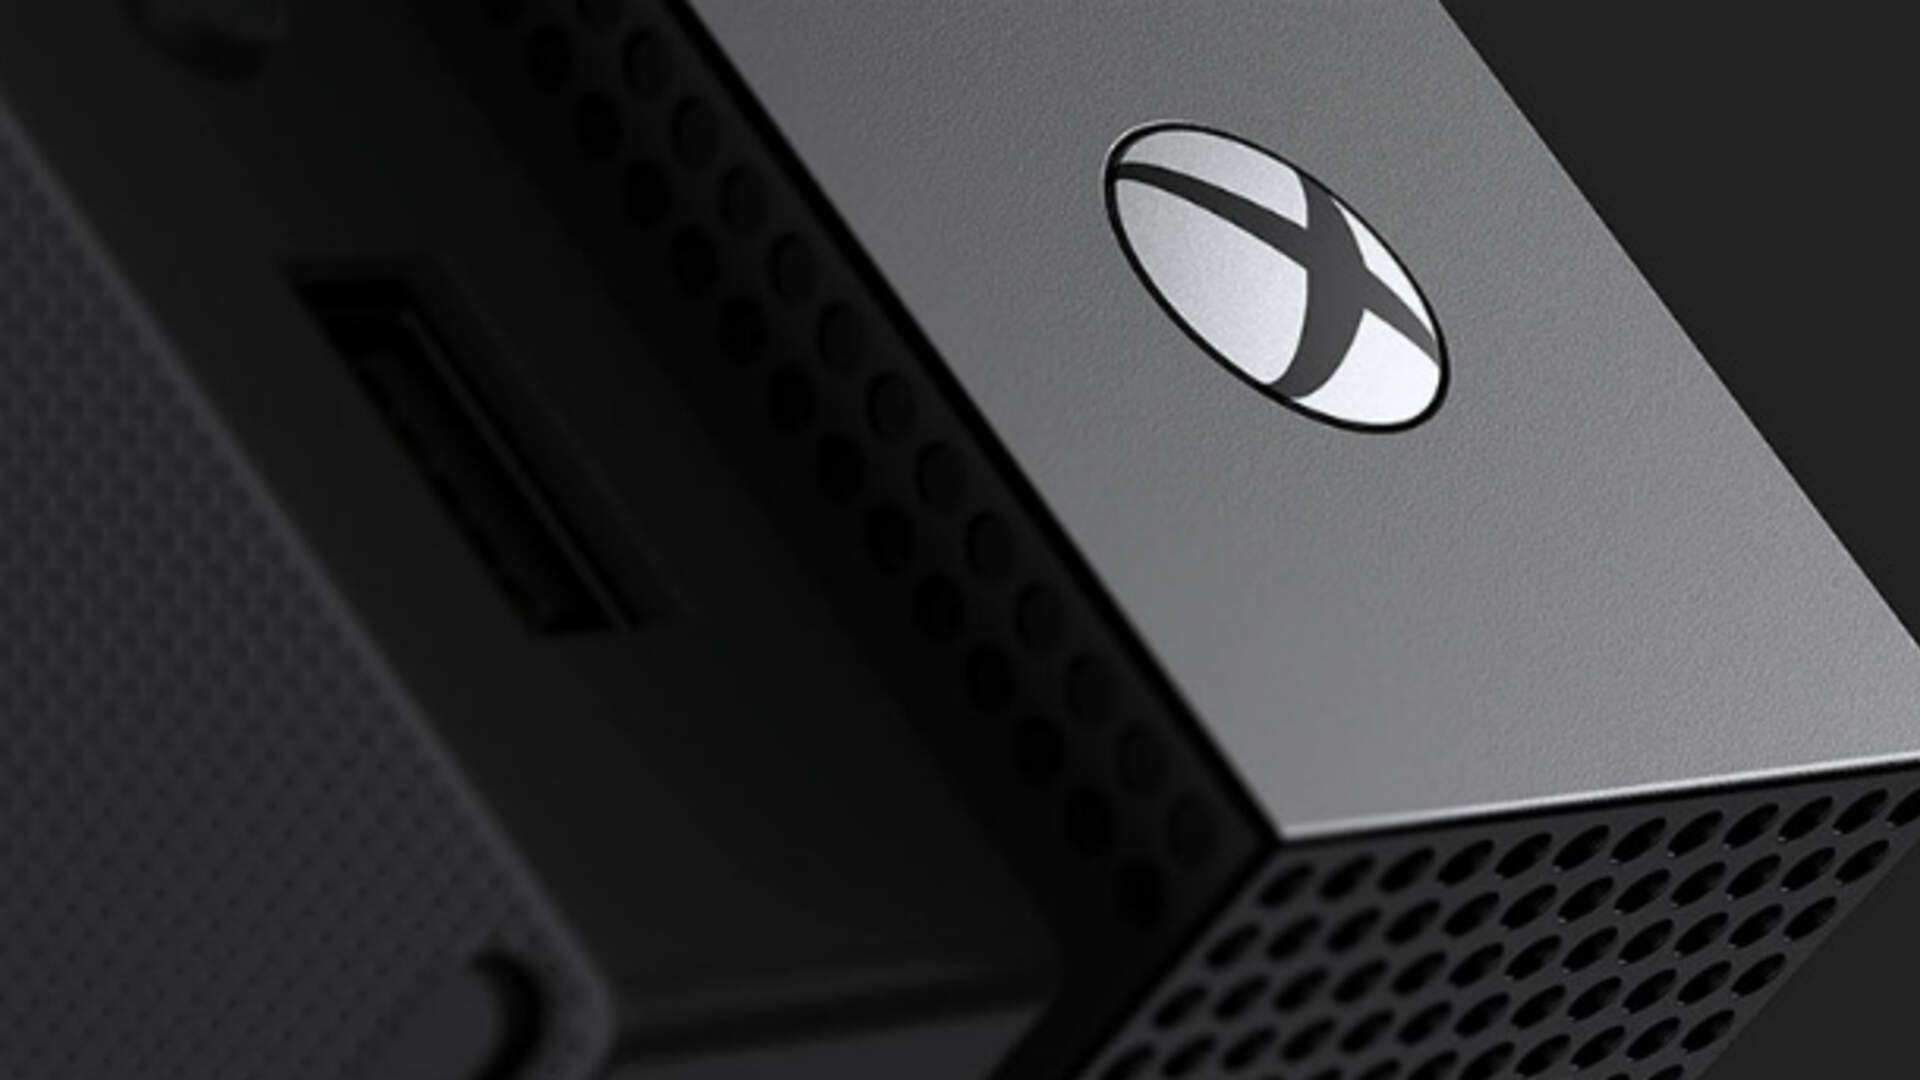 New Xbox Monthly Subscription Service Could Offer Xbox Live, Game Pass, and a Xbox One X Console